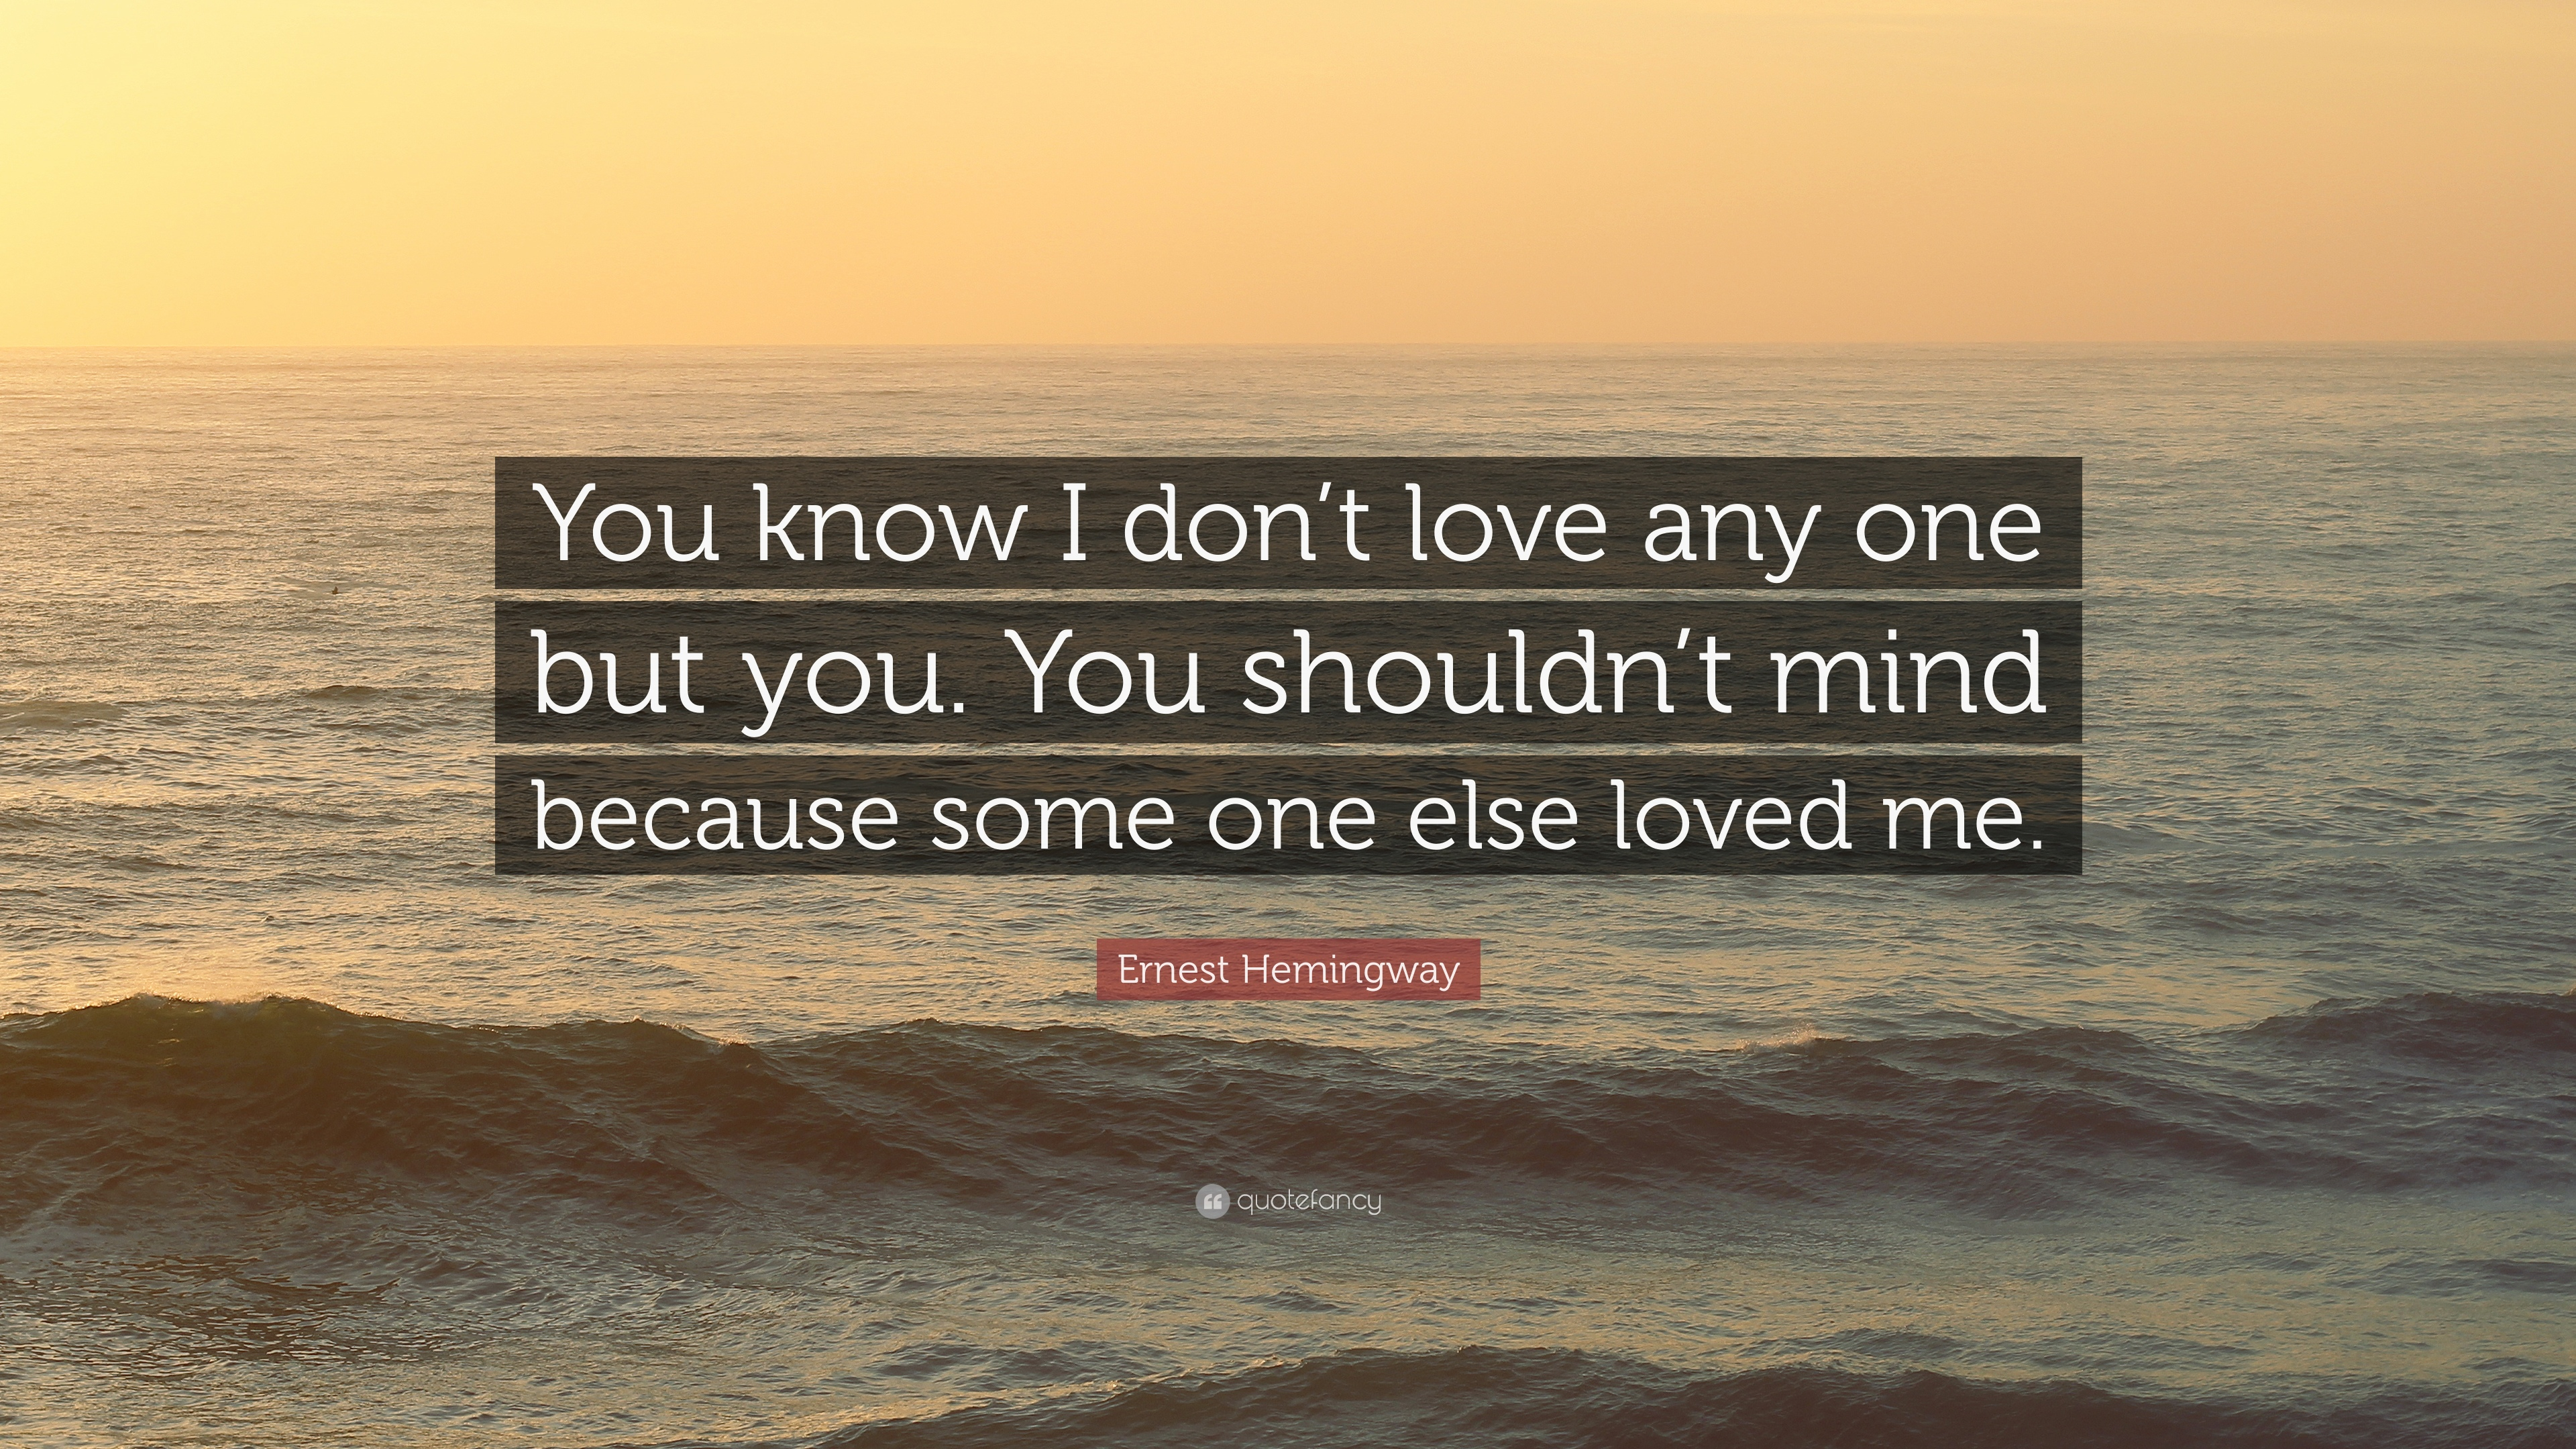 Ernest Hemingway Quote You Know I Dont Love Any One But You You